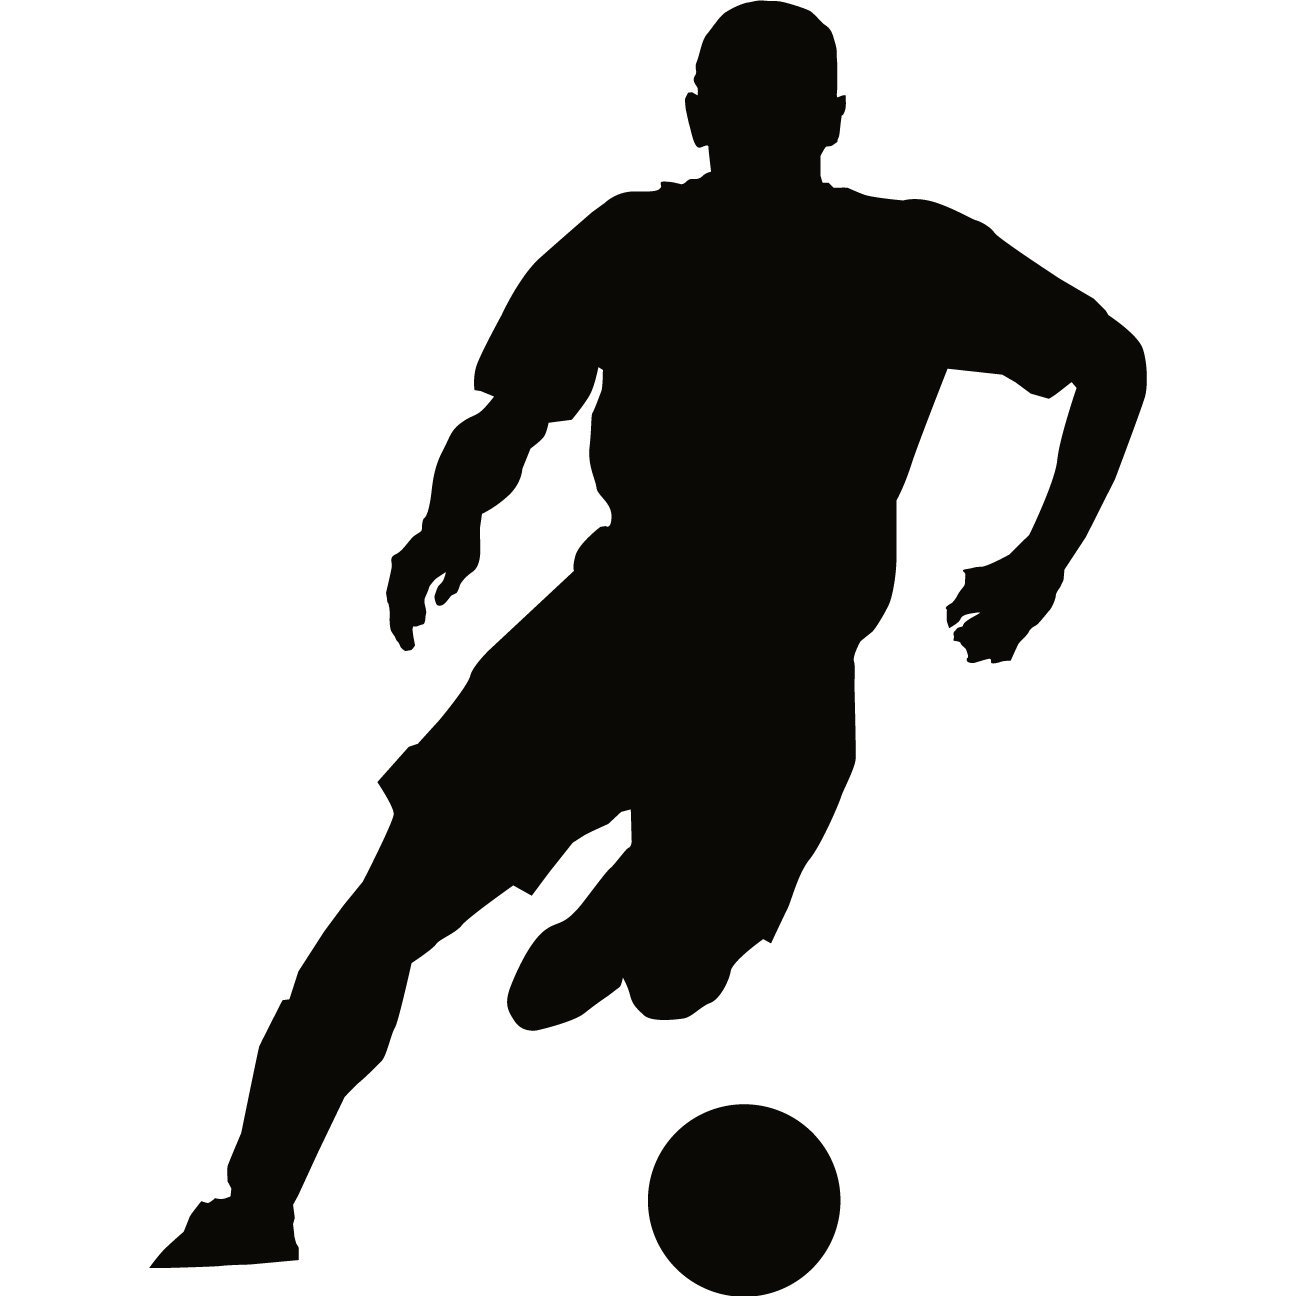 Playing football silhouette